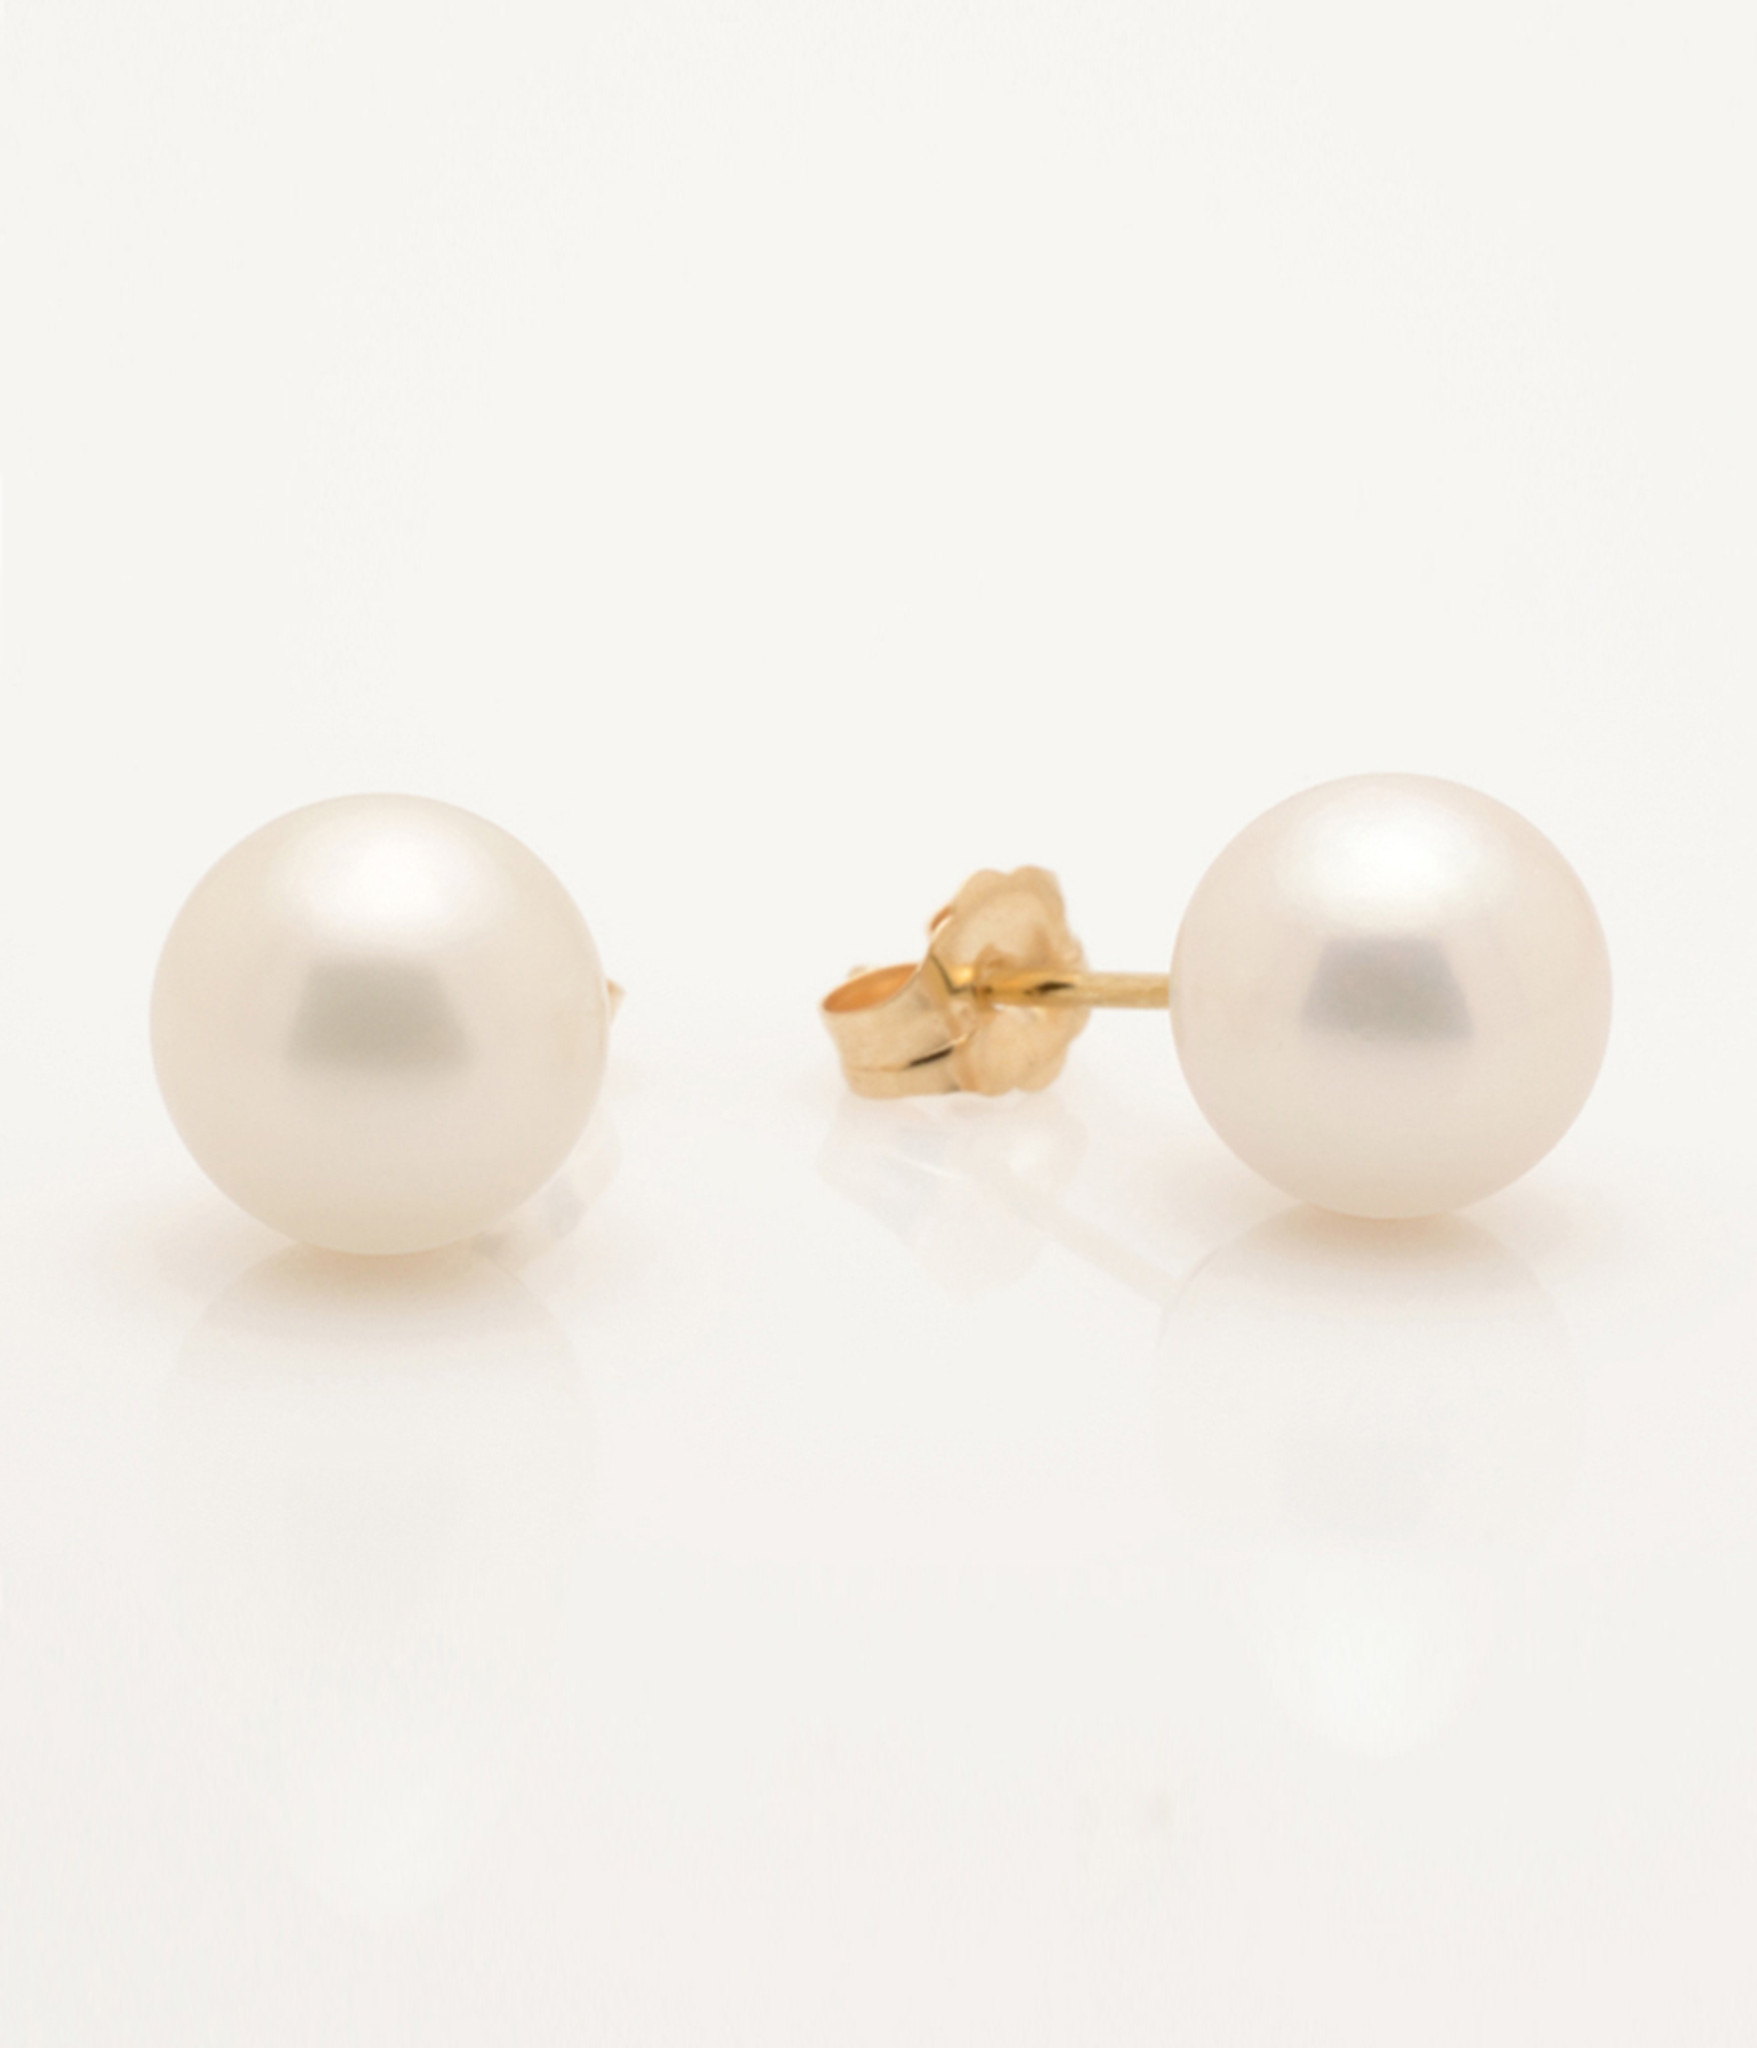 Side View of Cultured Freshwater White Pearl Earrings with 14k Gold Posts by Nektar De Stagni (8-9 mm)